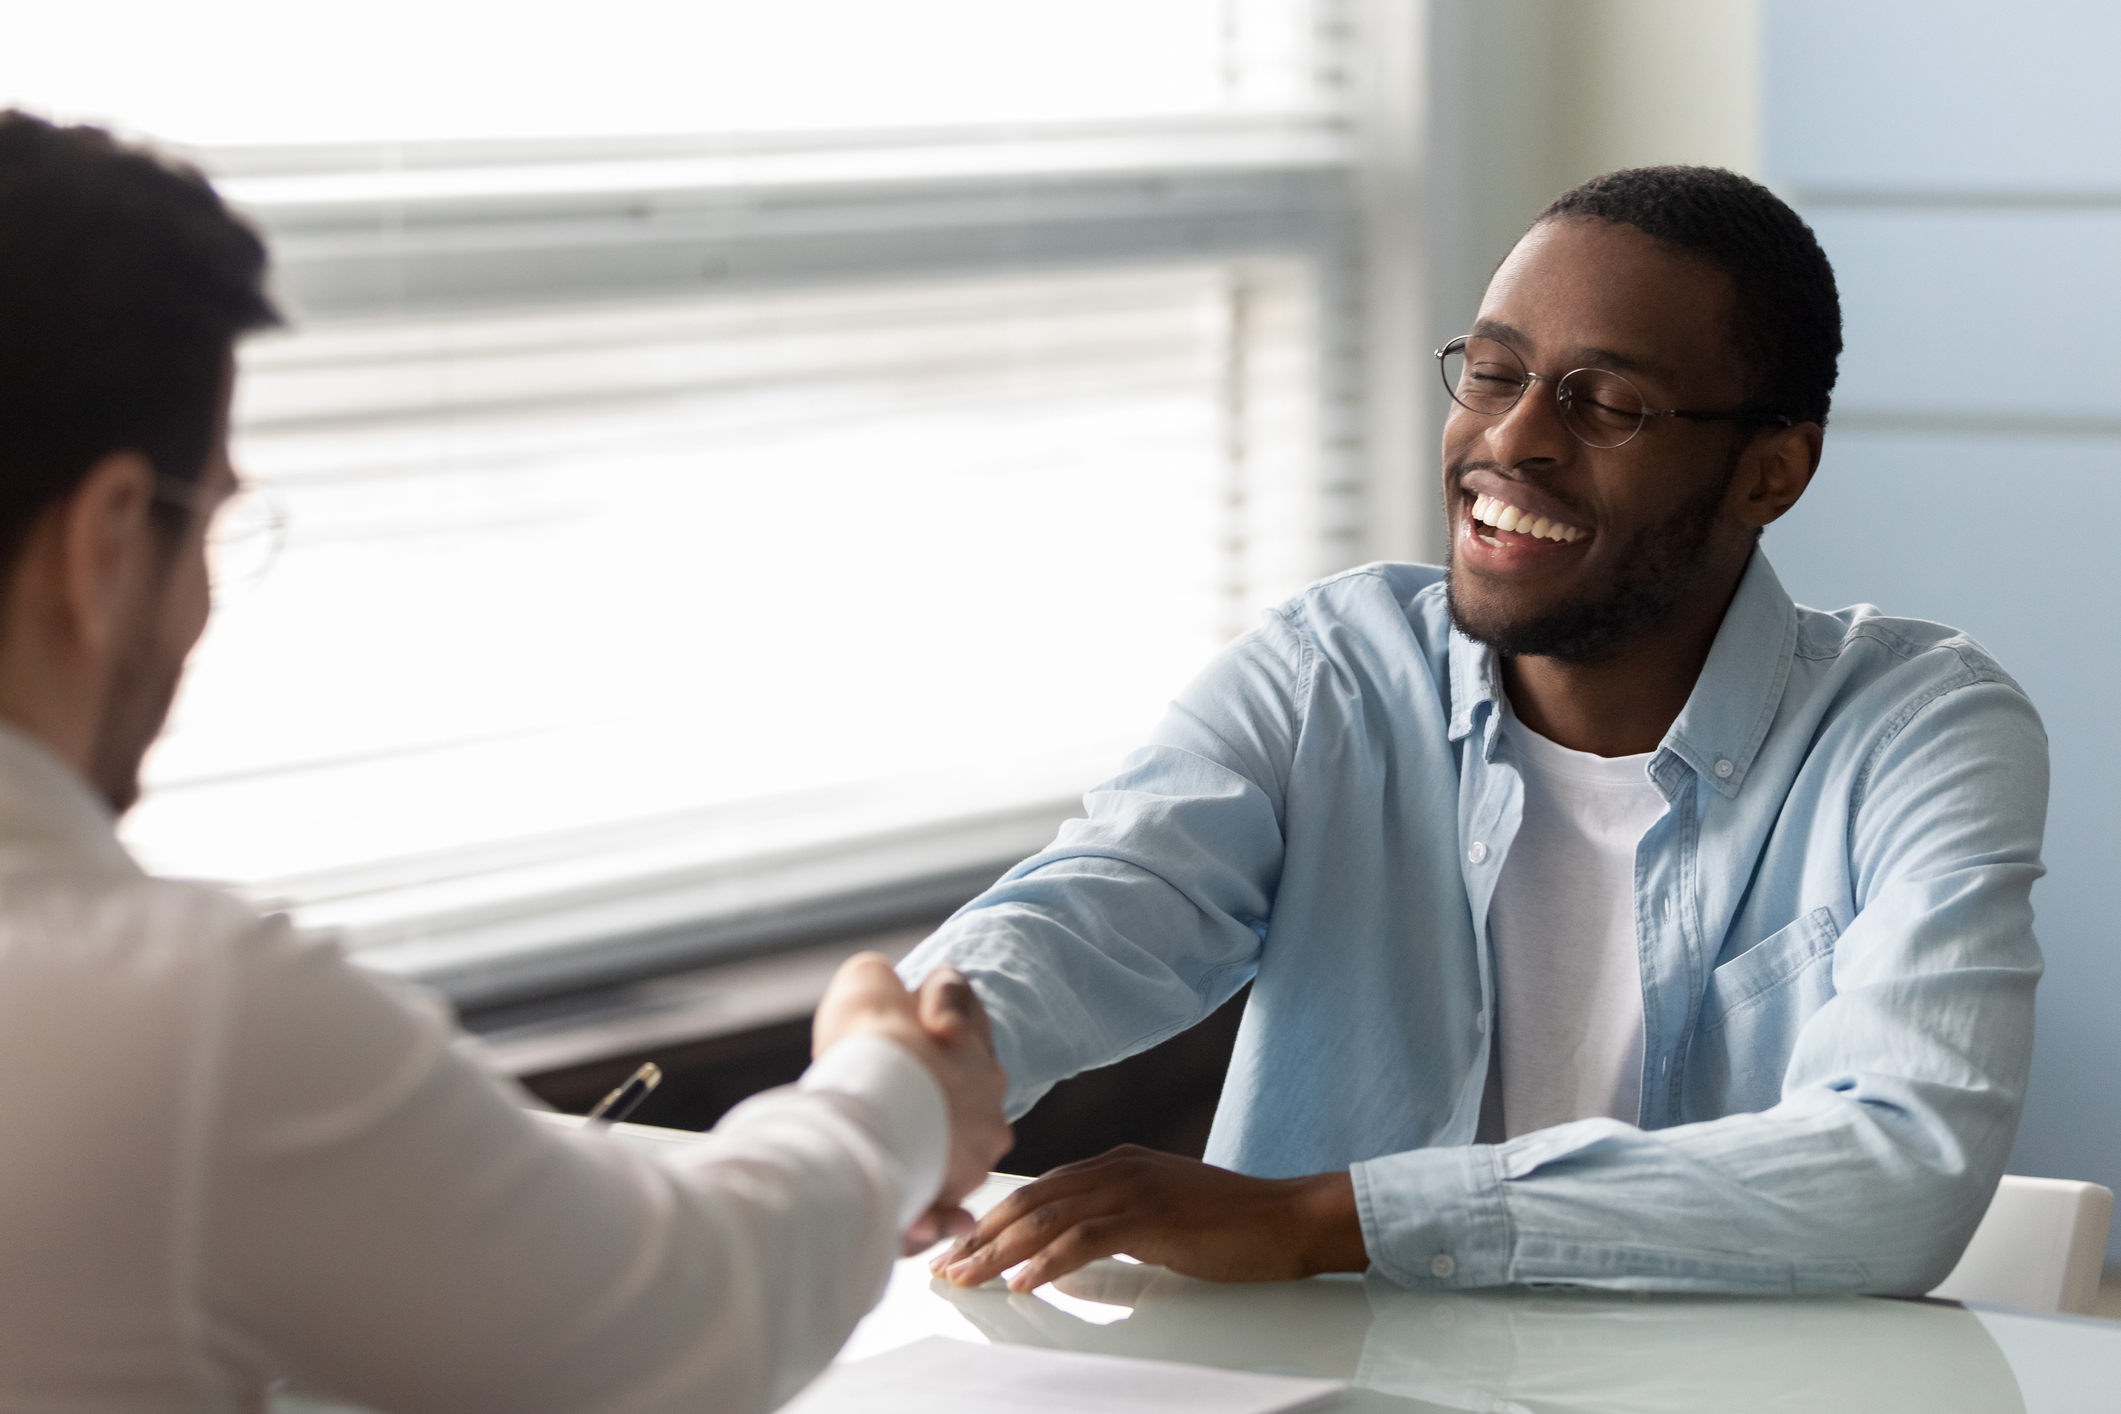 Boss and Interviewee shaking hands after applicant accepts job offer and is hired Job as a Web Developer